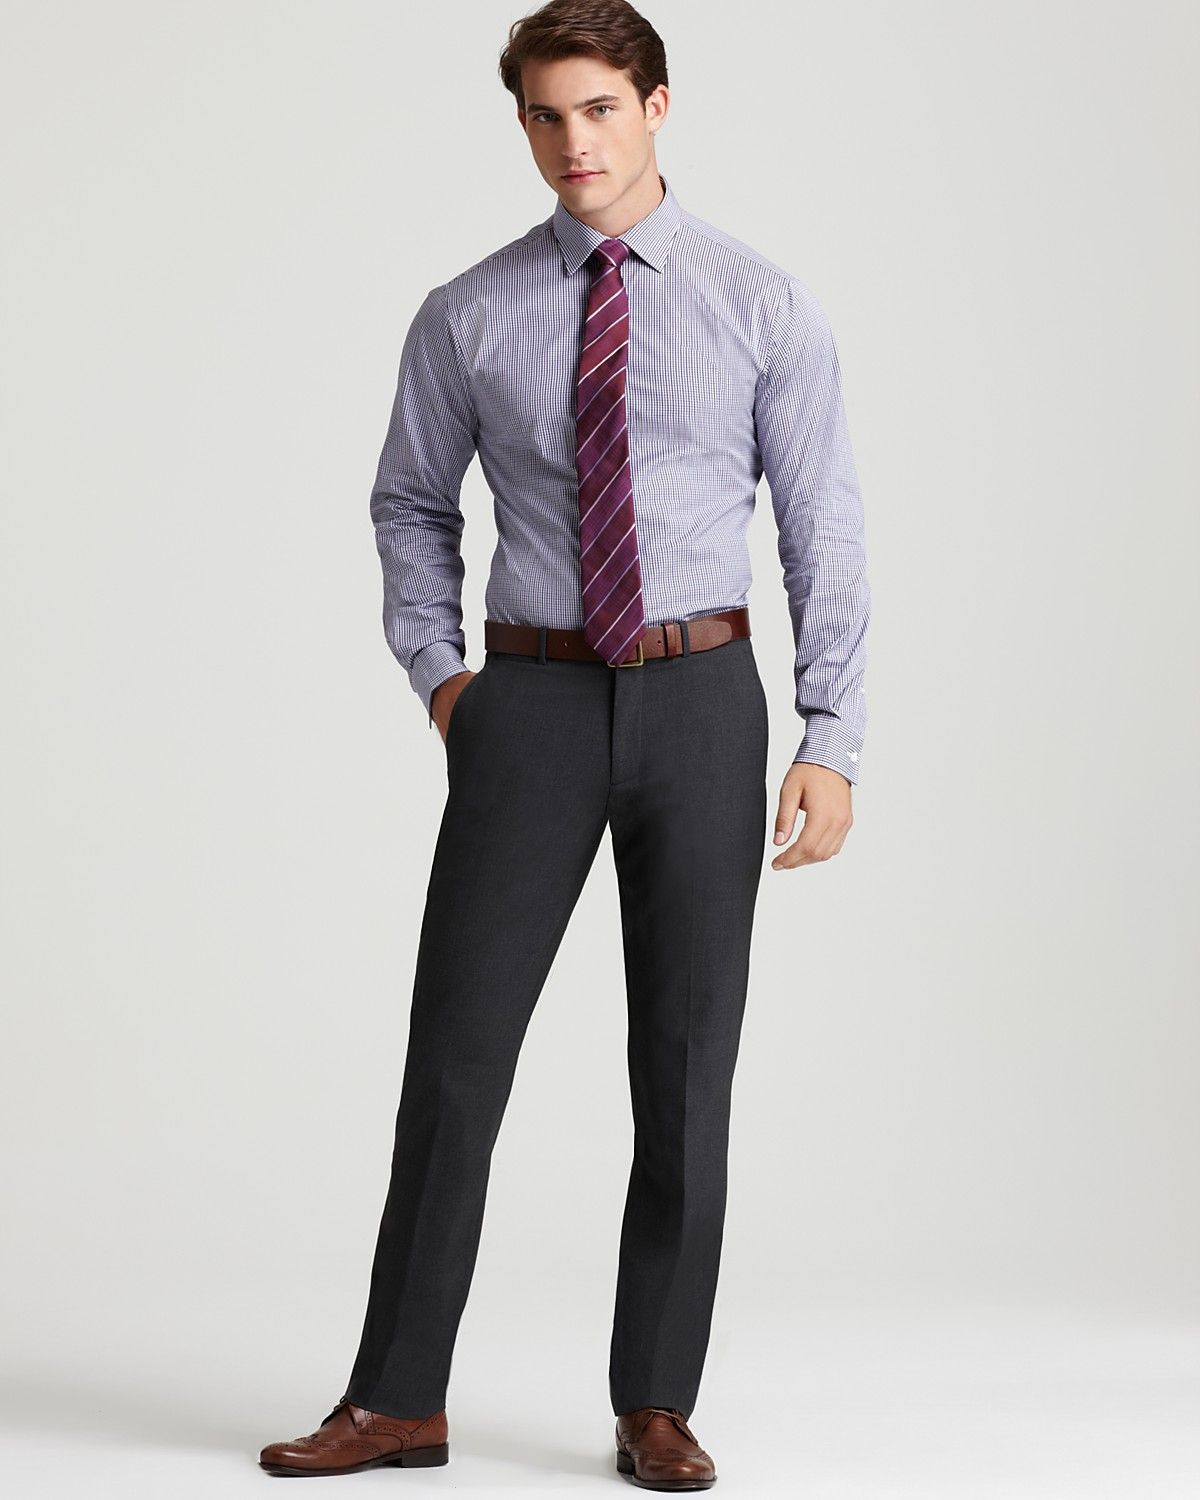 Brown shoes outfit, Mens outfits